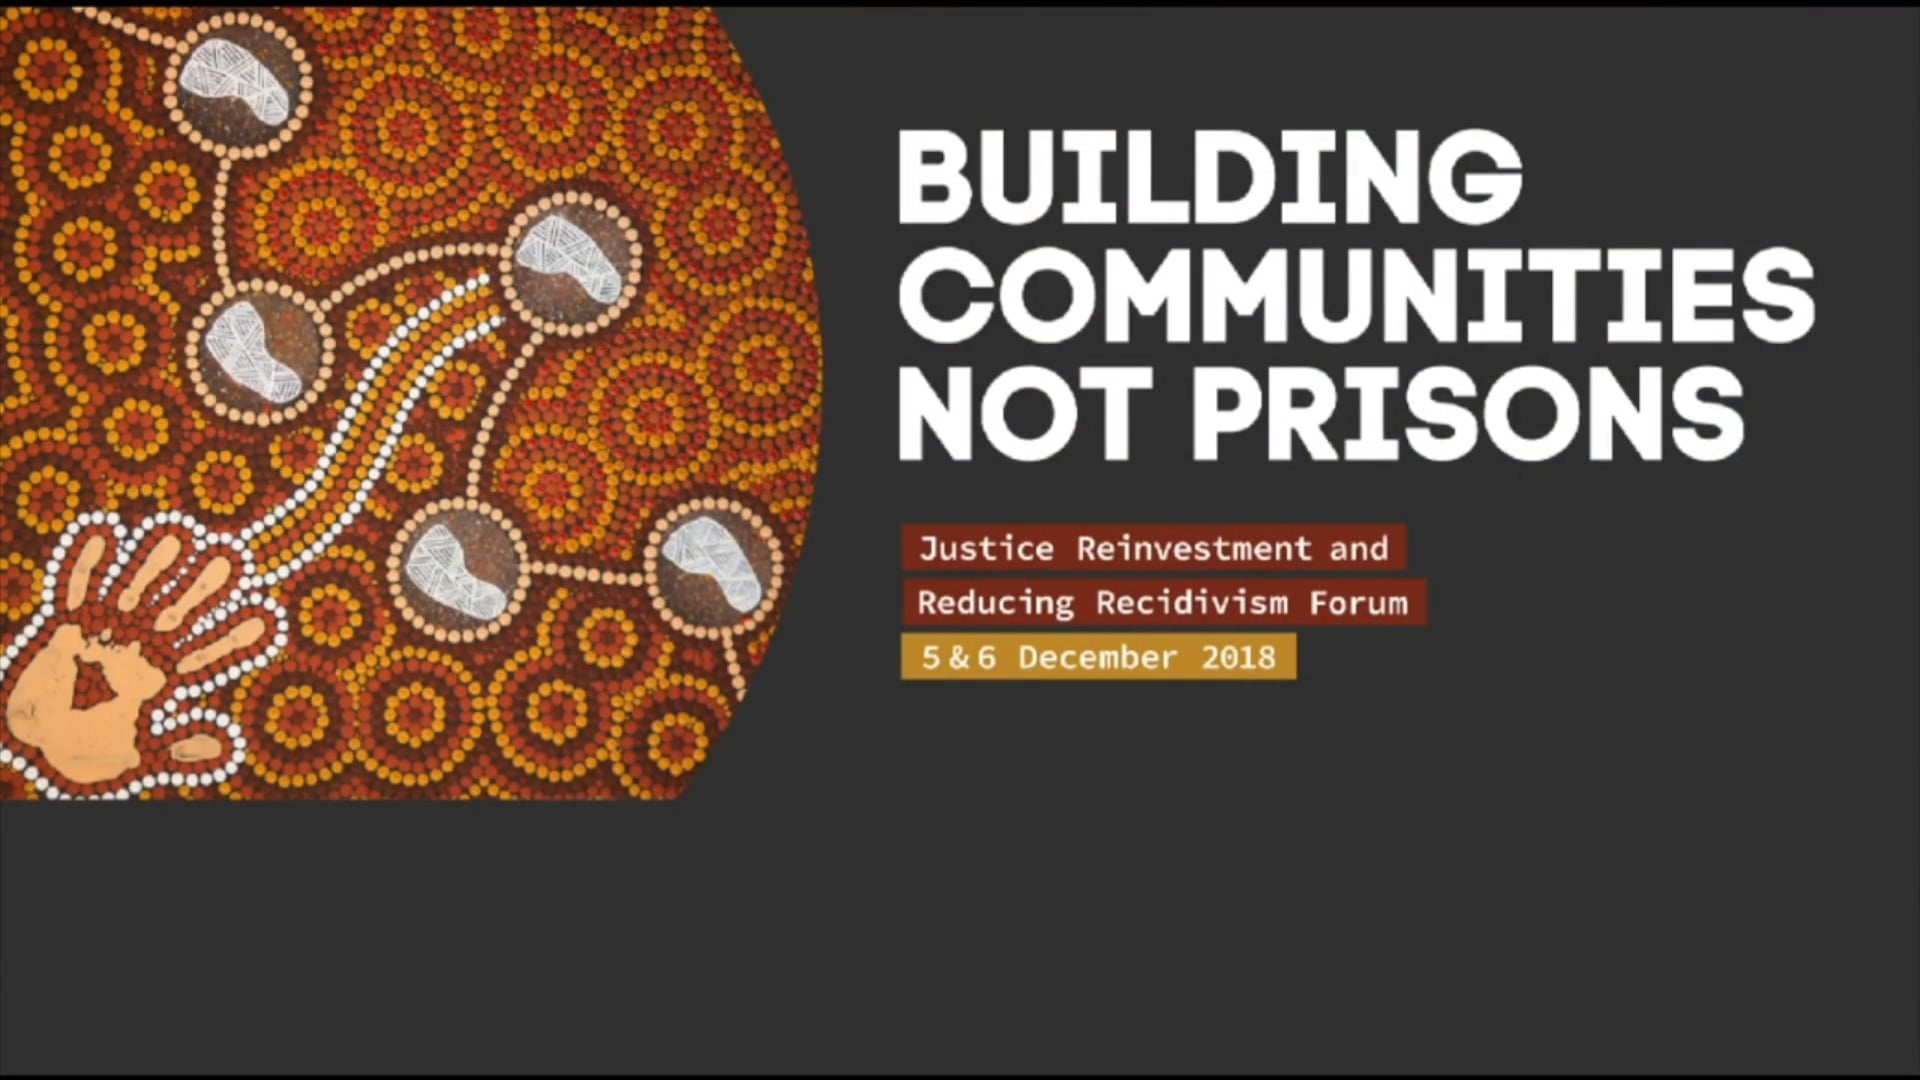 Building Communities Not Prisons - Event Highlight